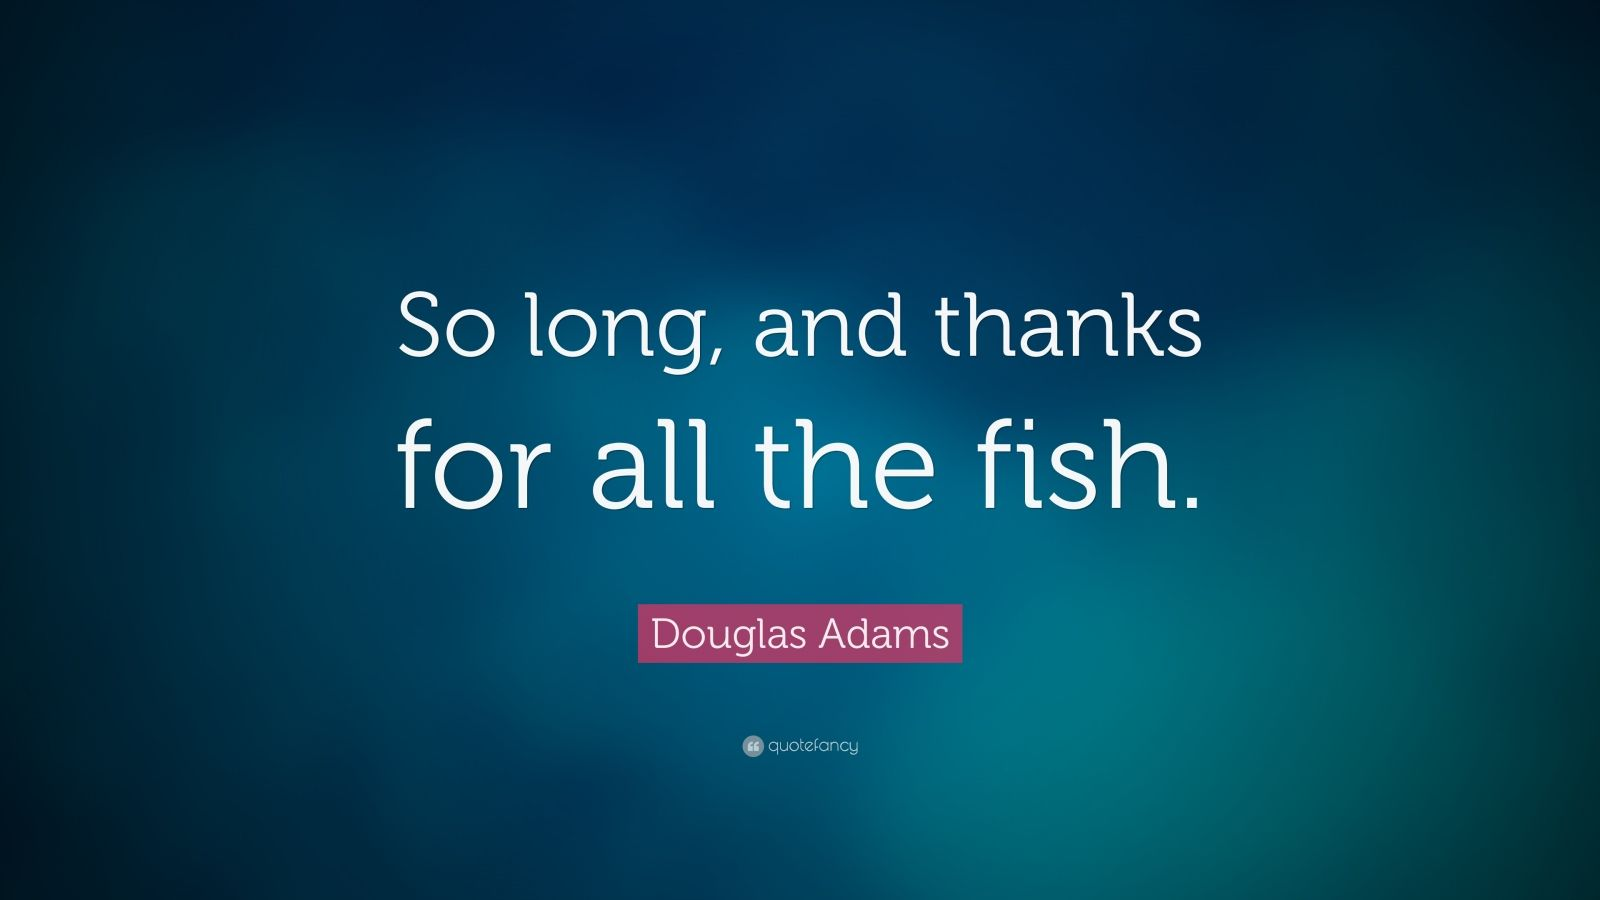 Douglas adams quotes 25 wallpapers quotefancy for Thanks for all the fish